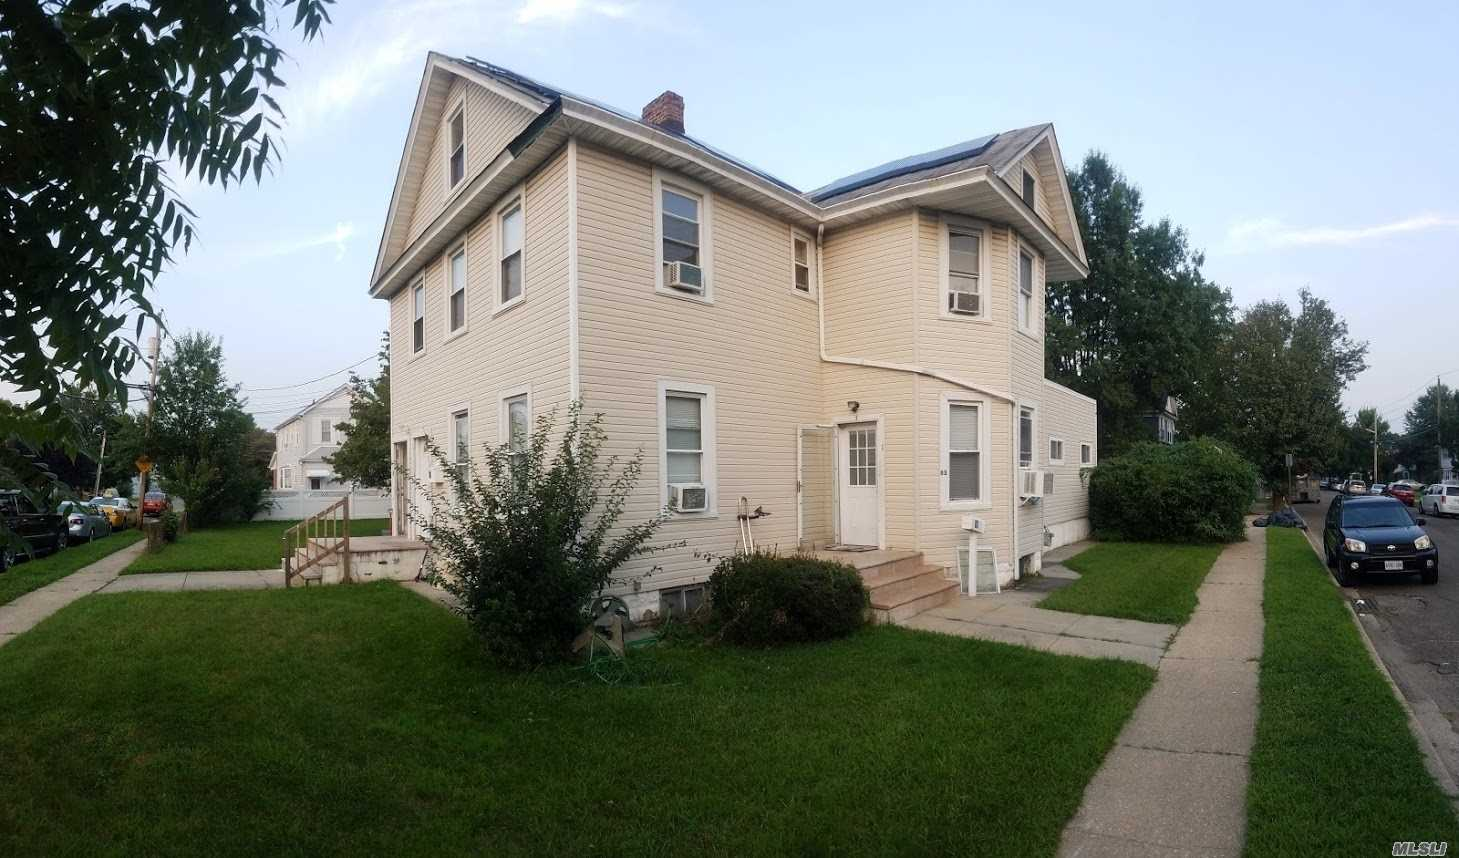 83 Kraemer St, Hicksville, New York